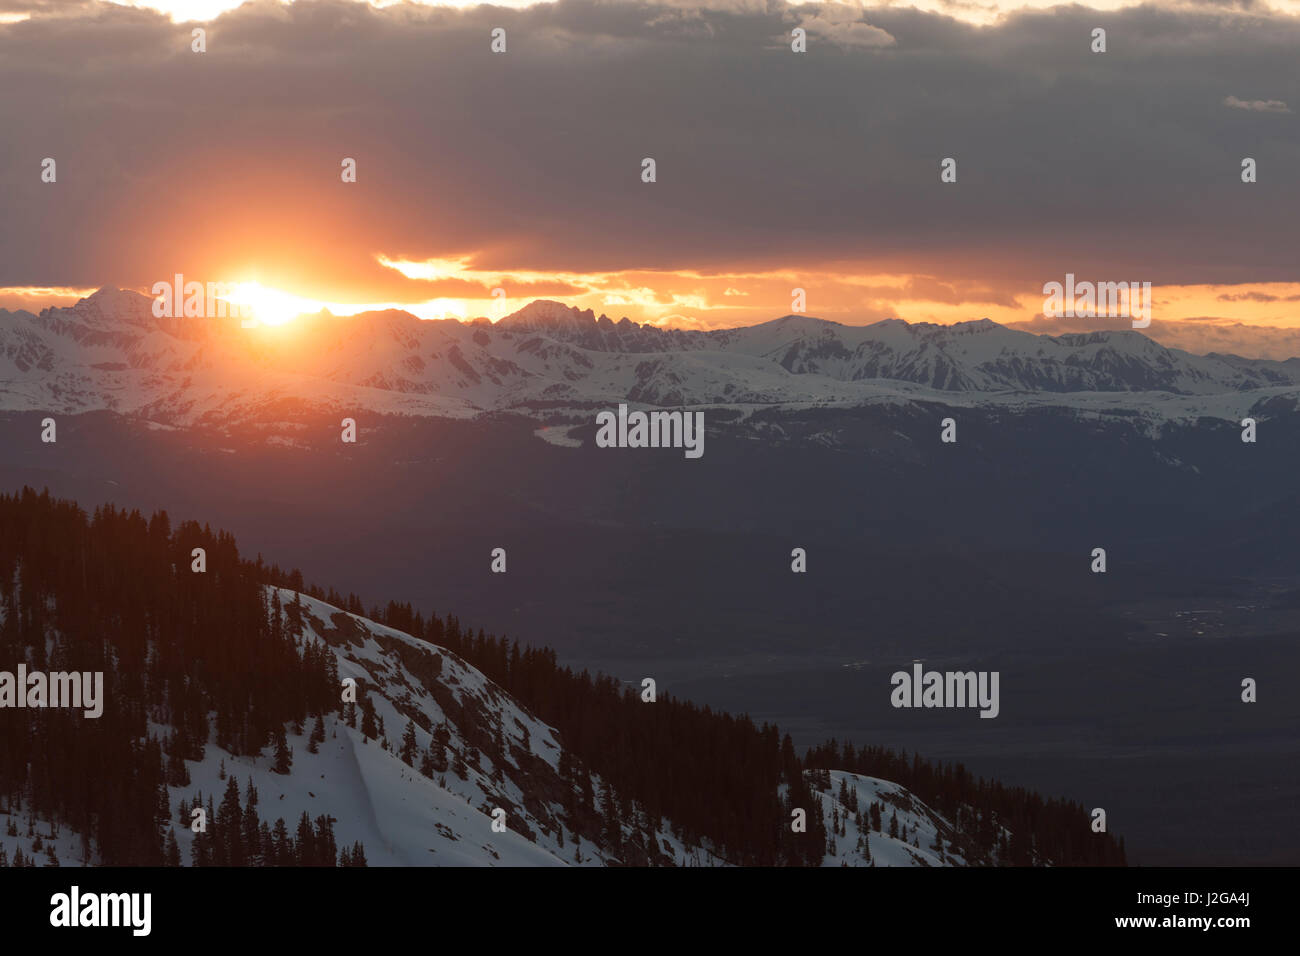 USA, Colorado. Sunset over the Elk Range. Credit as: Don Grall / Jaynes Gallery / DanitaDelimont.com - Stock Image